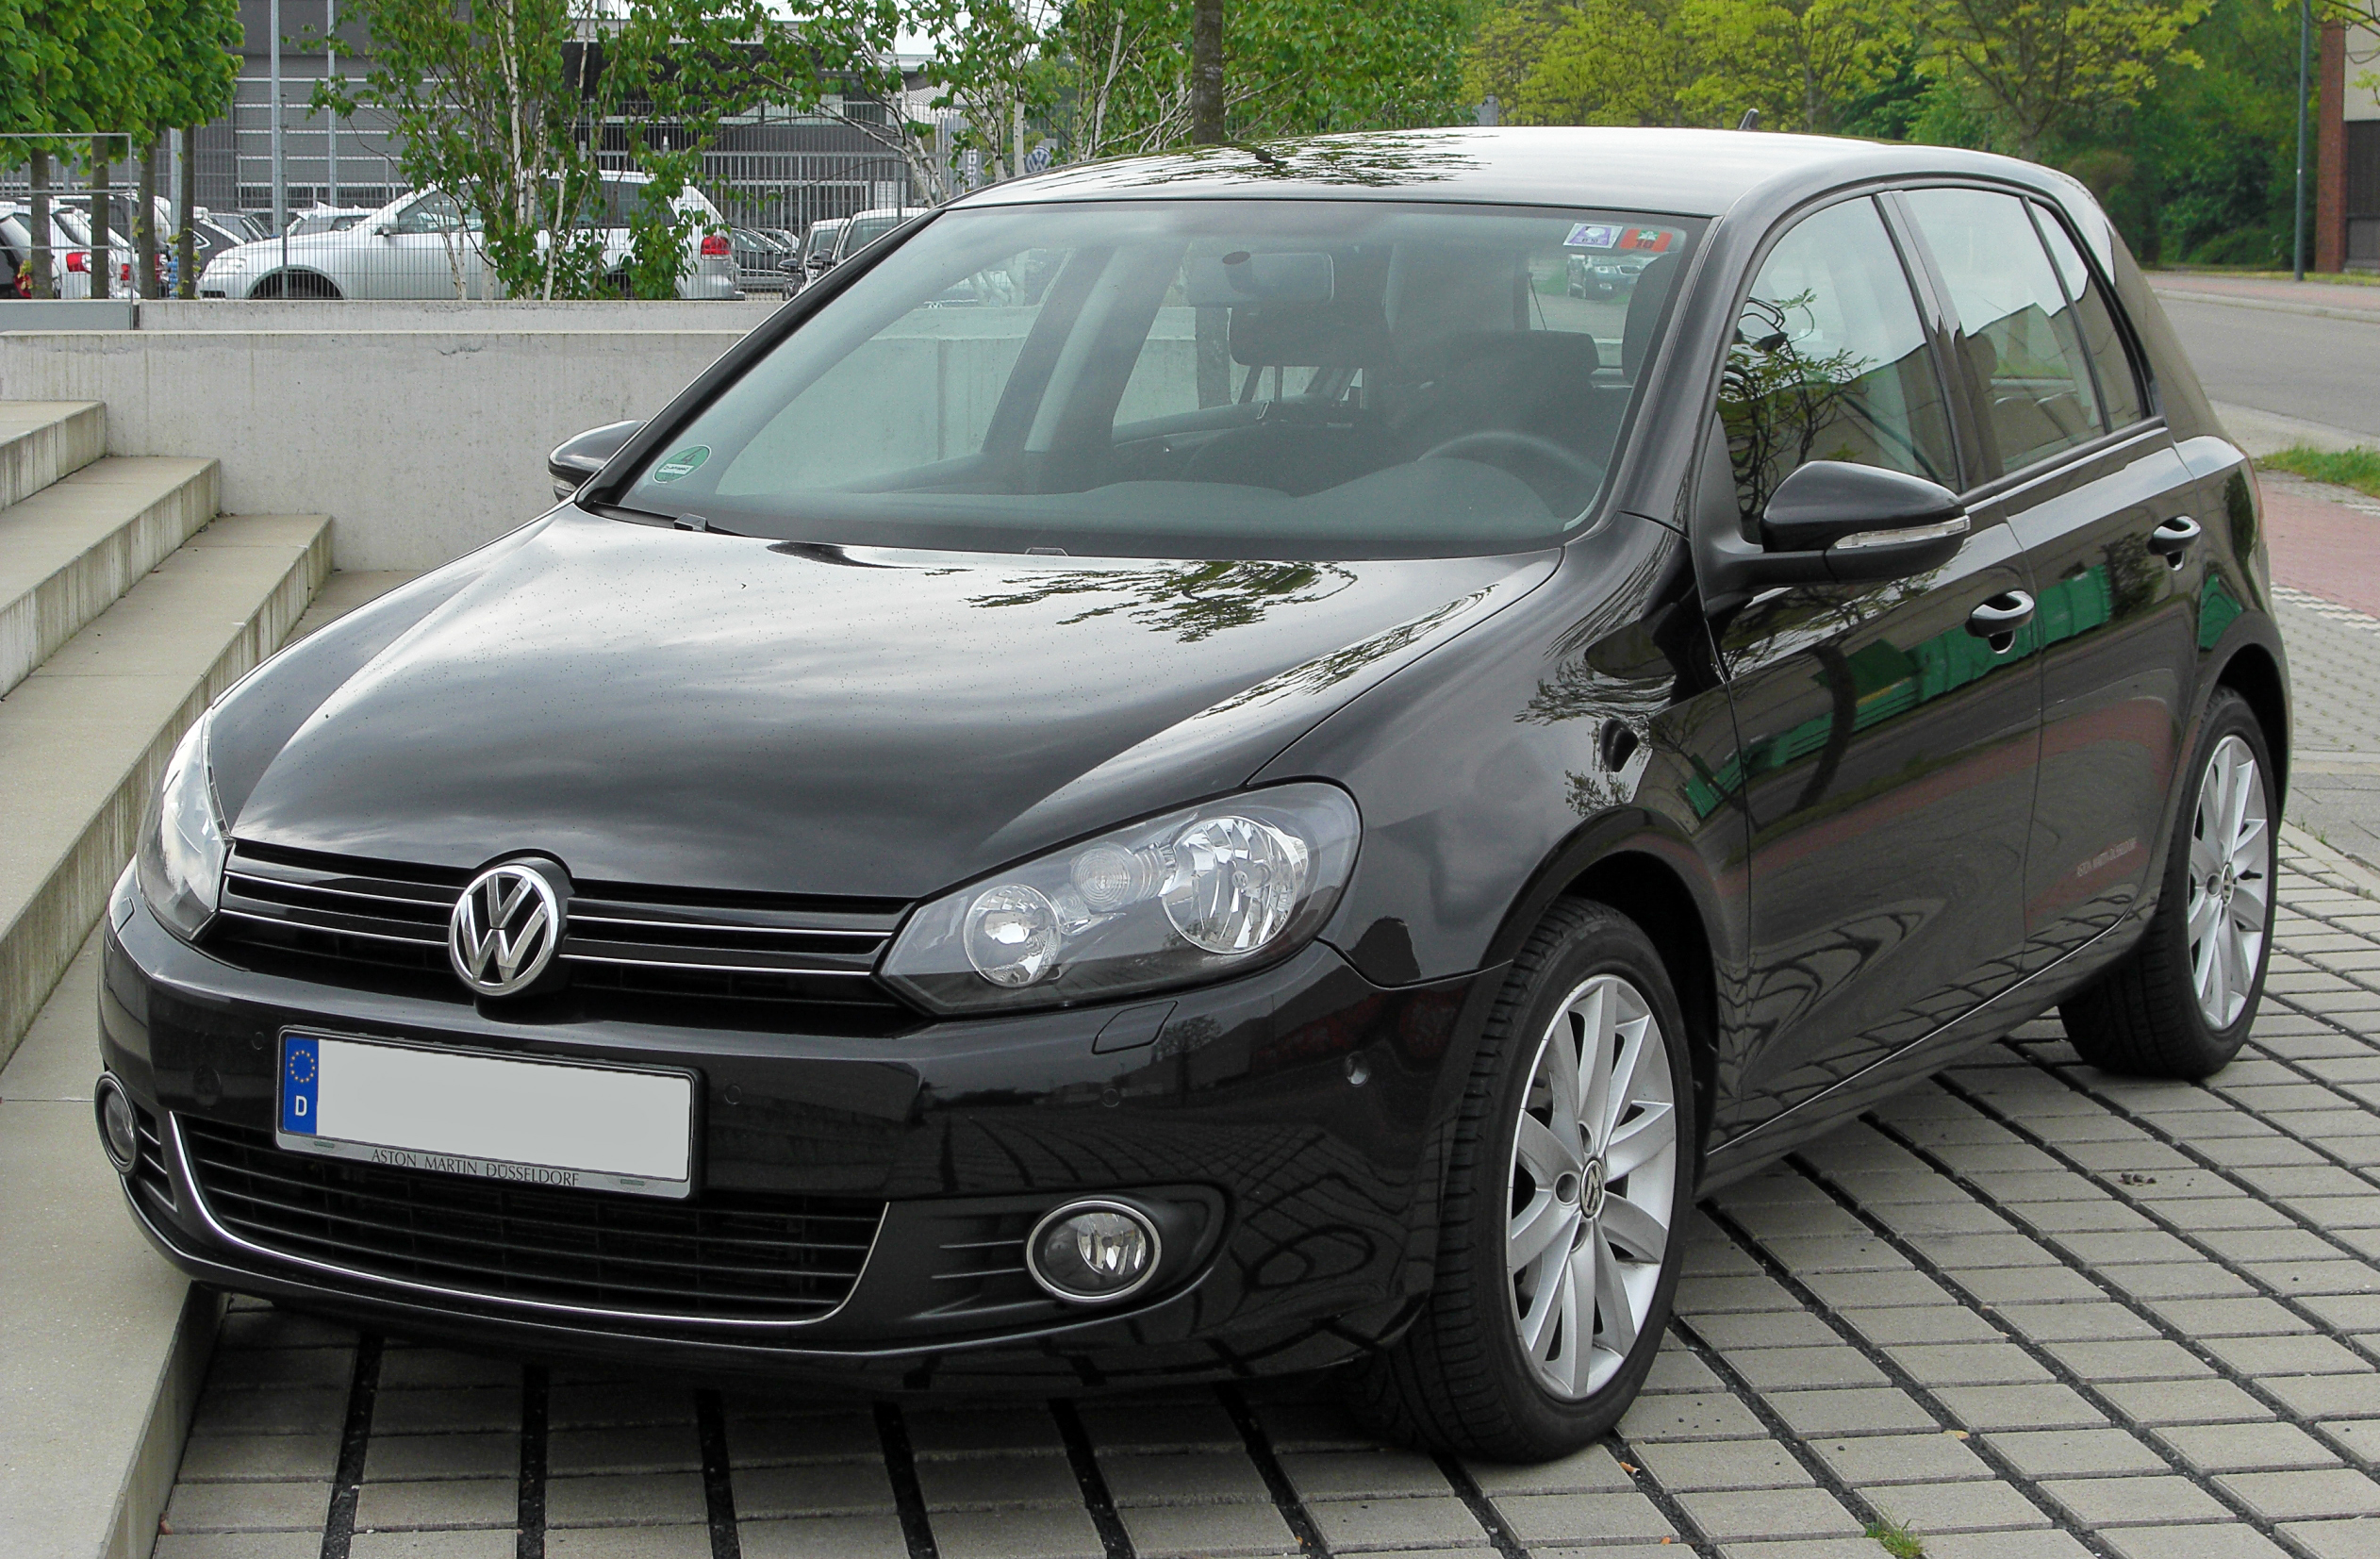 2003 volkswagen golf 2 0 tdi related infomation specifications weili automotive network. Black Bedroom Furniture Sets. Home Design Ideas